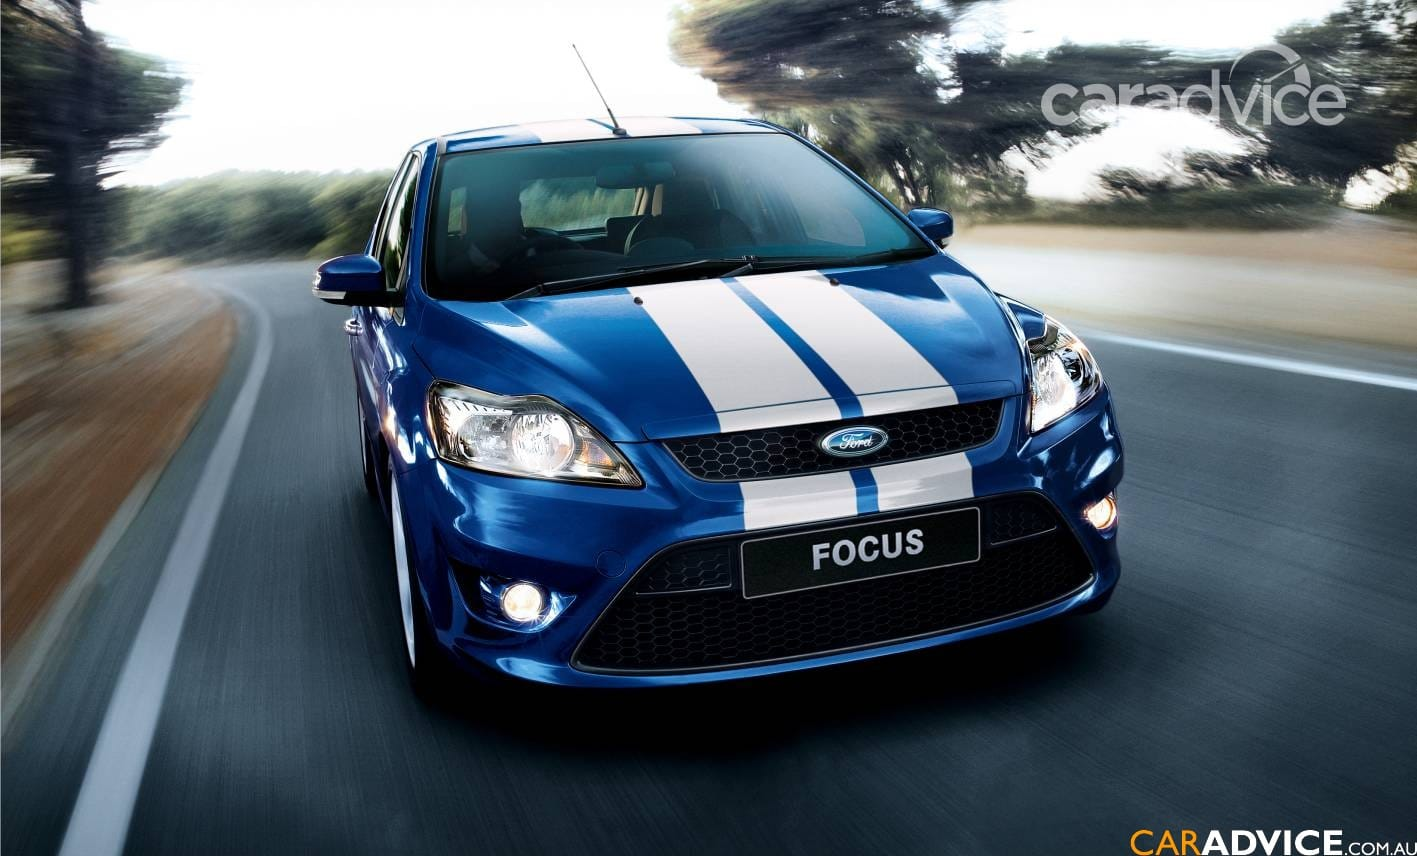 2009 ford focus xr5 turbo specs caradvice. Black Bedroom Furniture Sets. Home Design Ideas